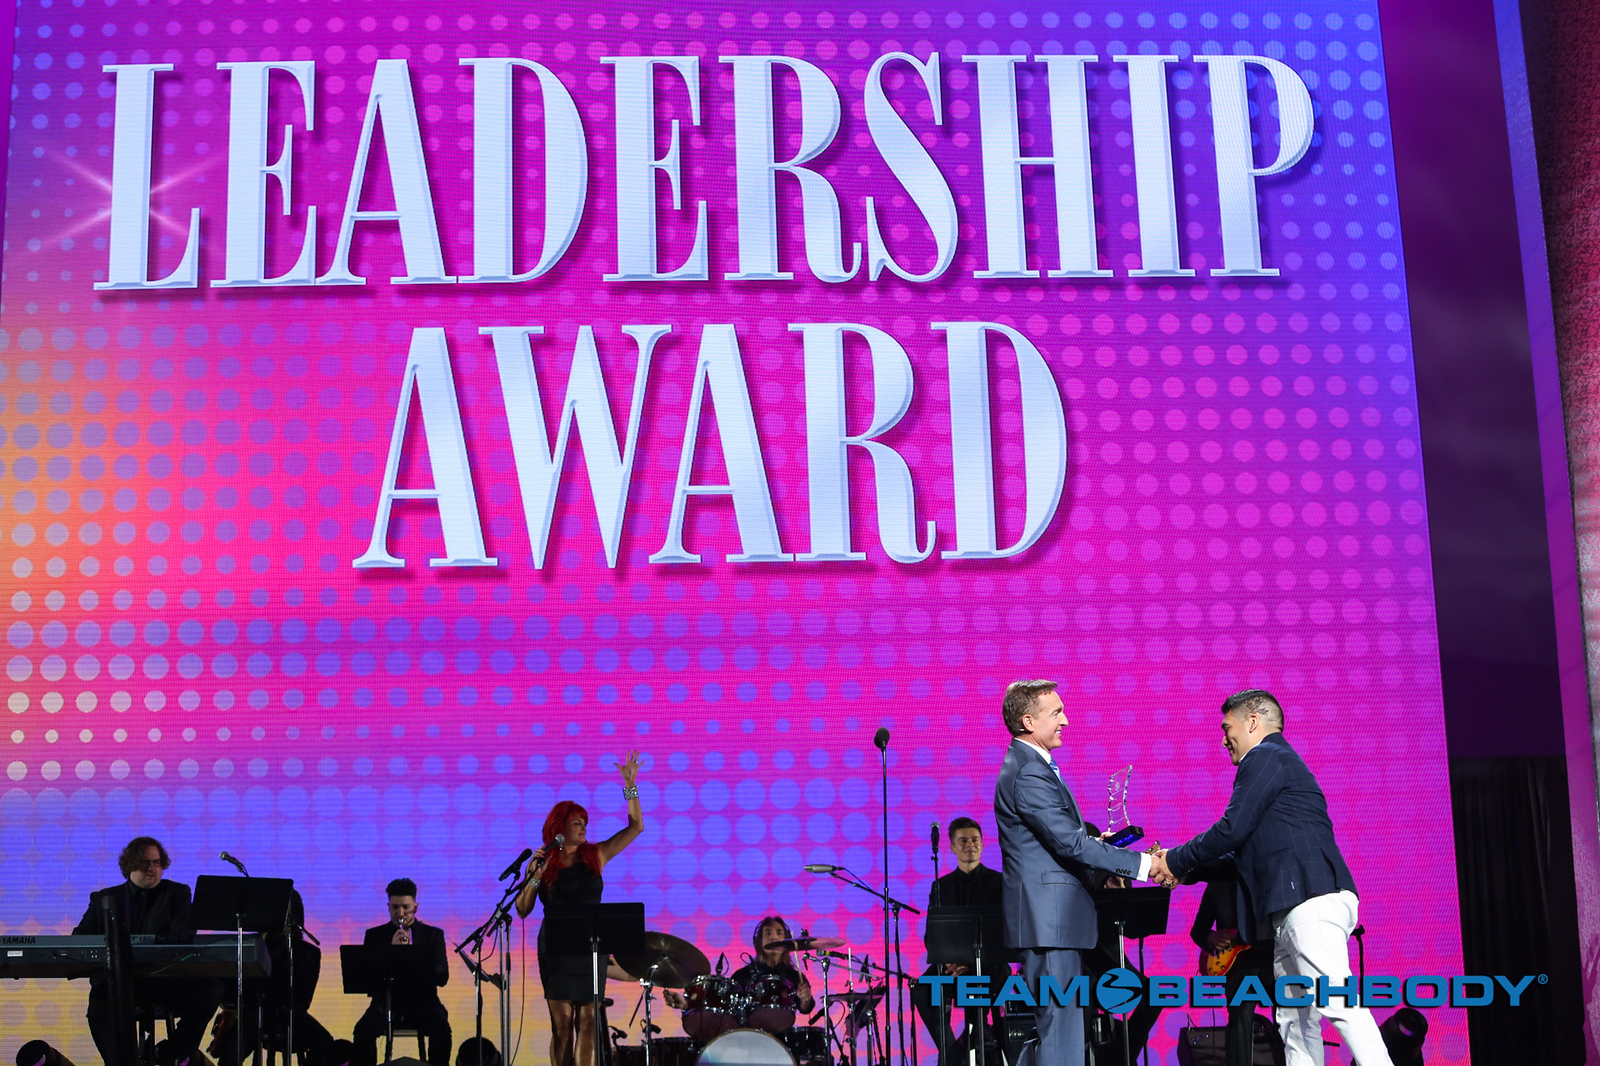 Beachbody Leadership Award Recipient Miguel Carrasco